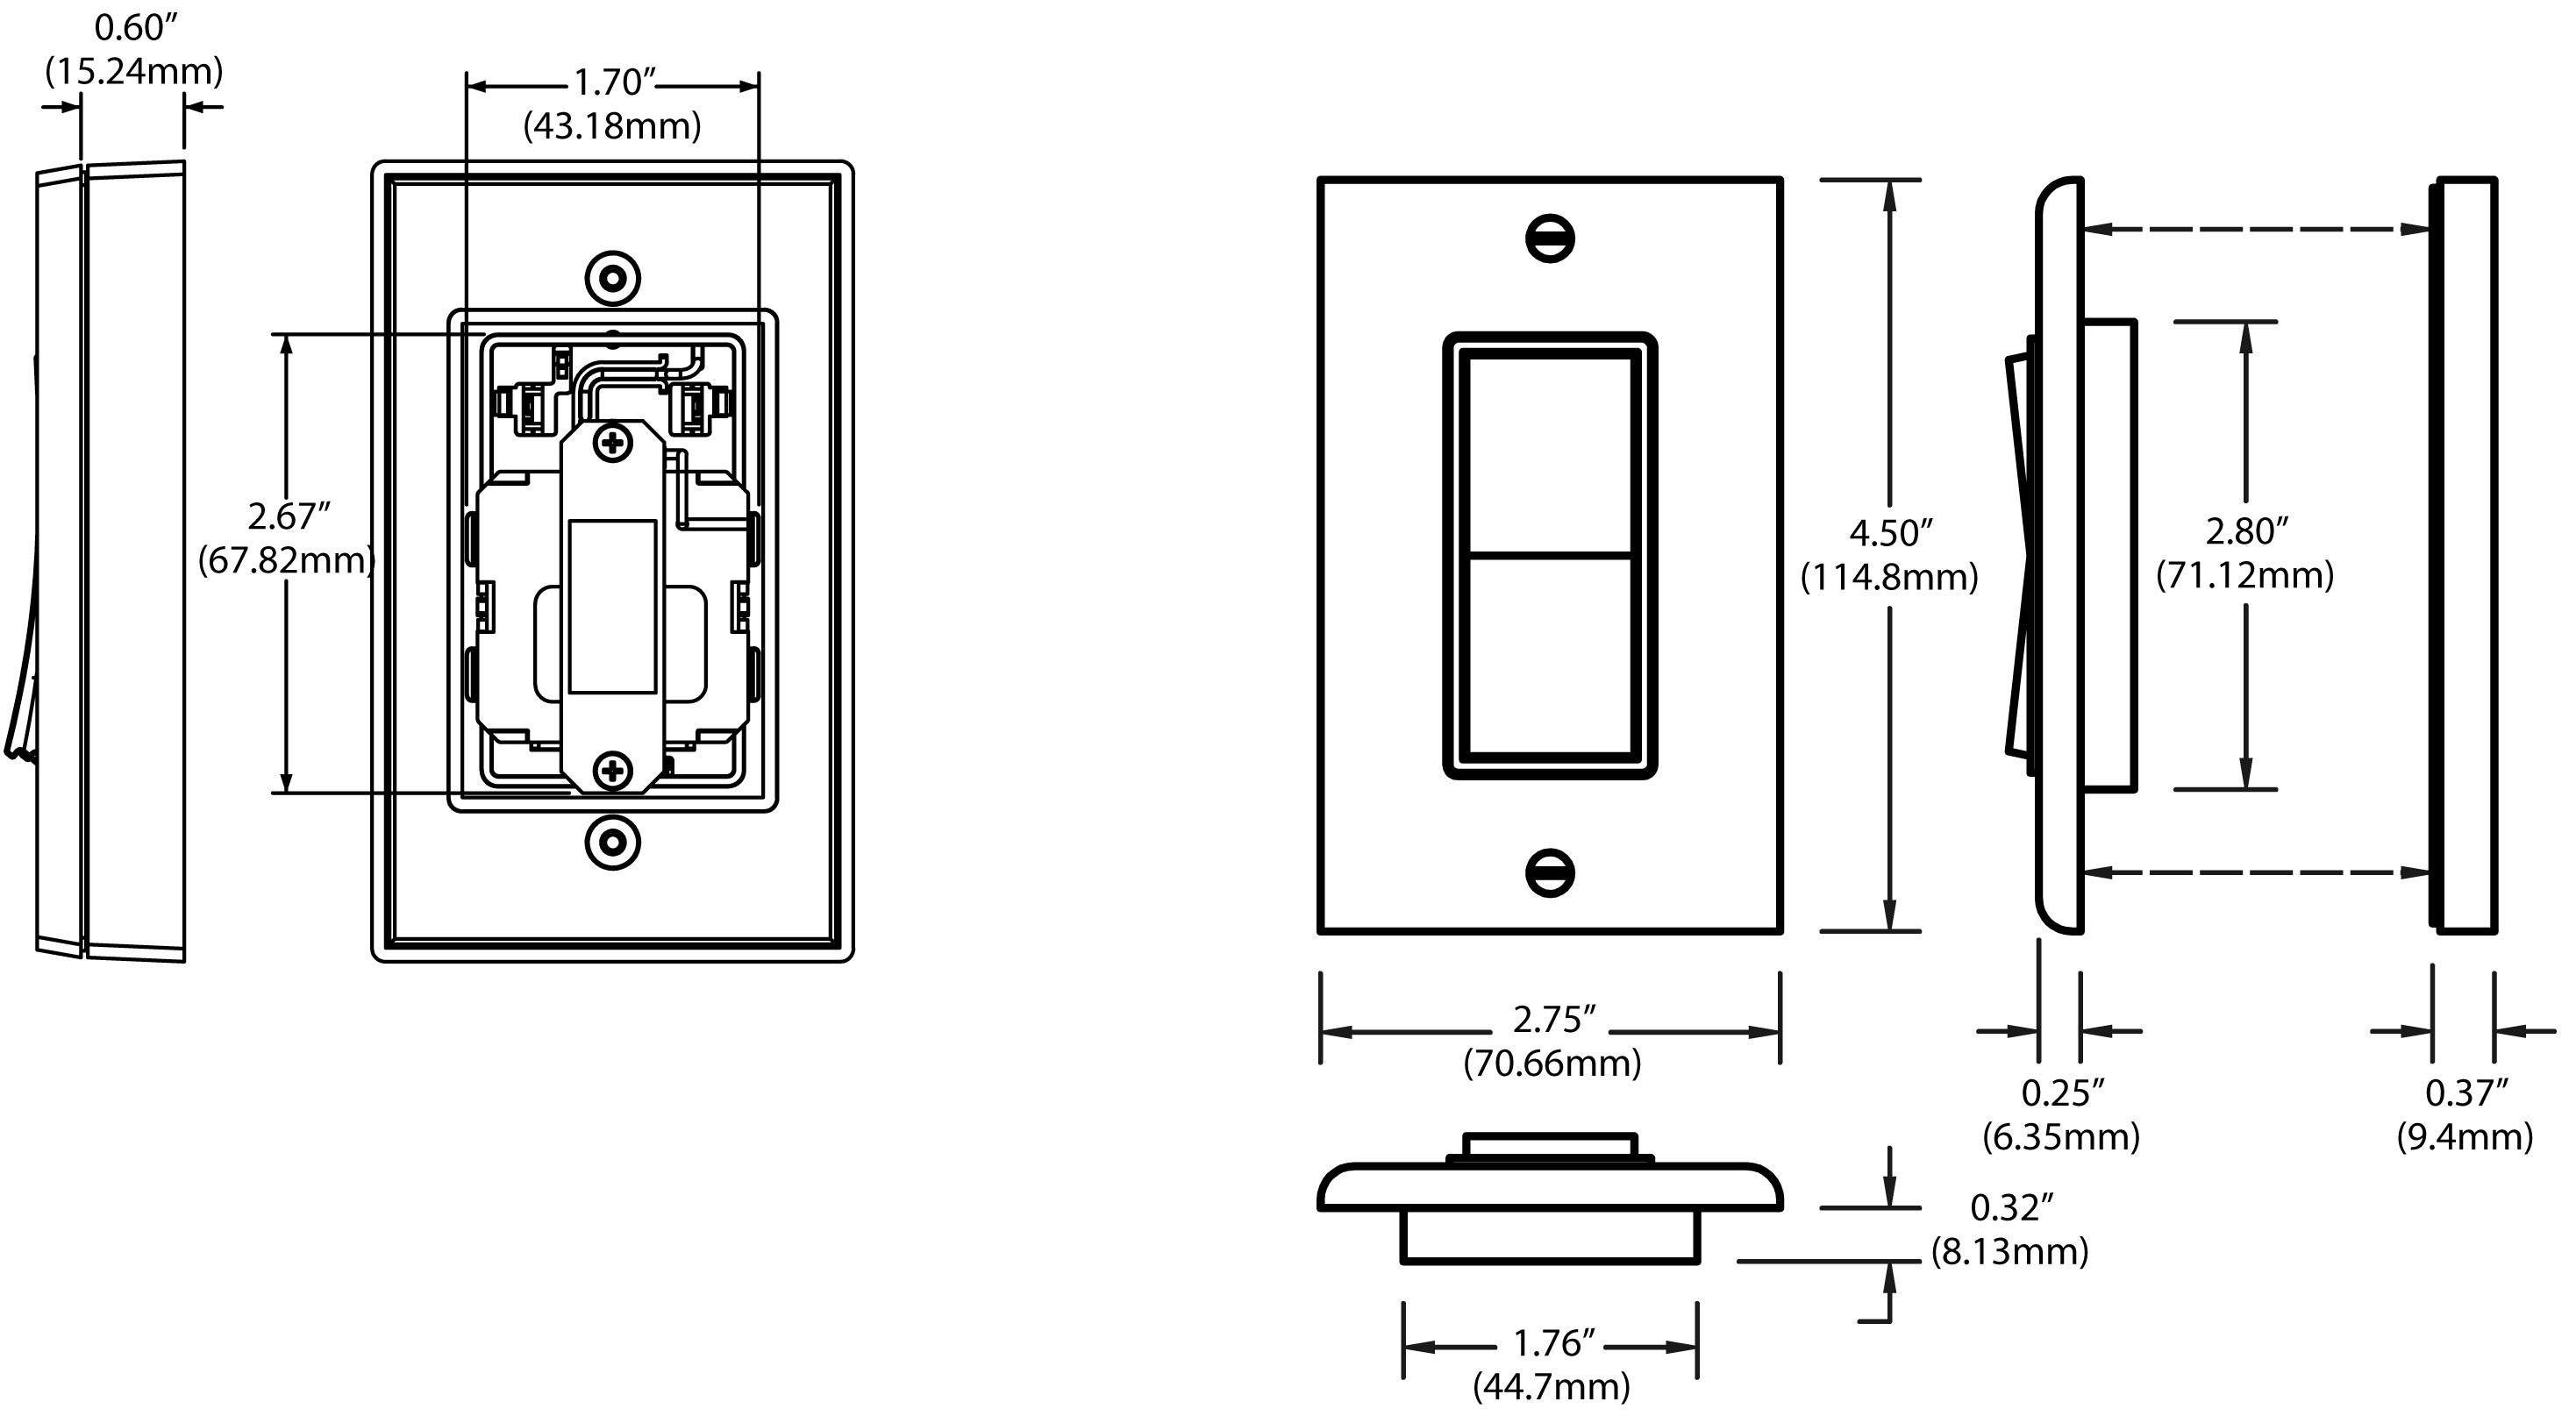 BottomILarge._V390024919_ leviton wss0s p0w wireless self powered remote switch, white 3-Way Switch Wiring Diagram Variations at n-0.co